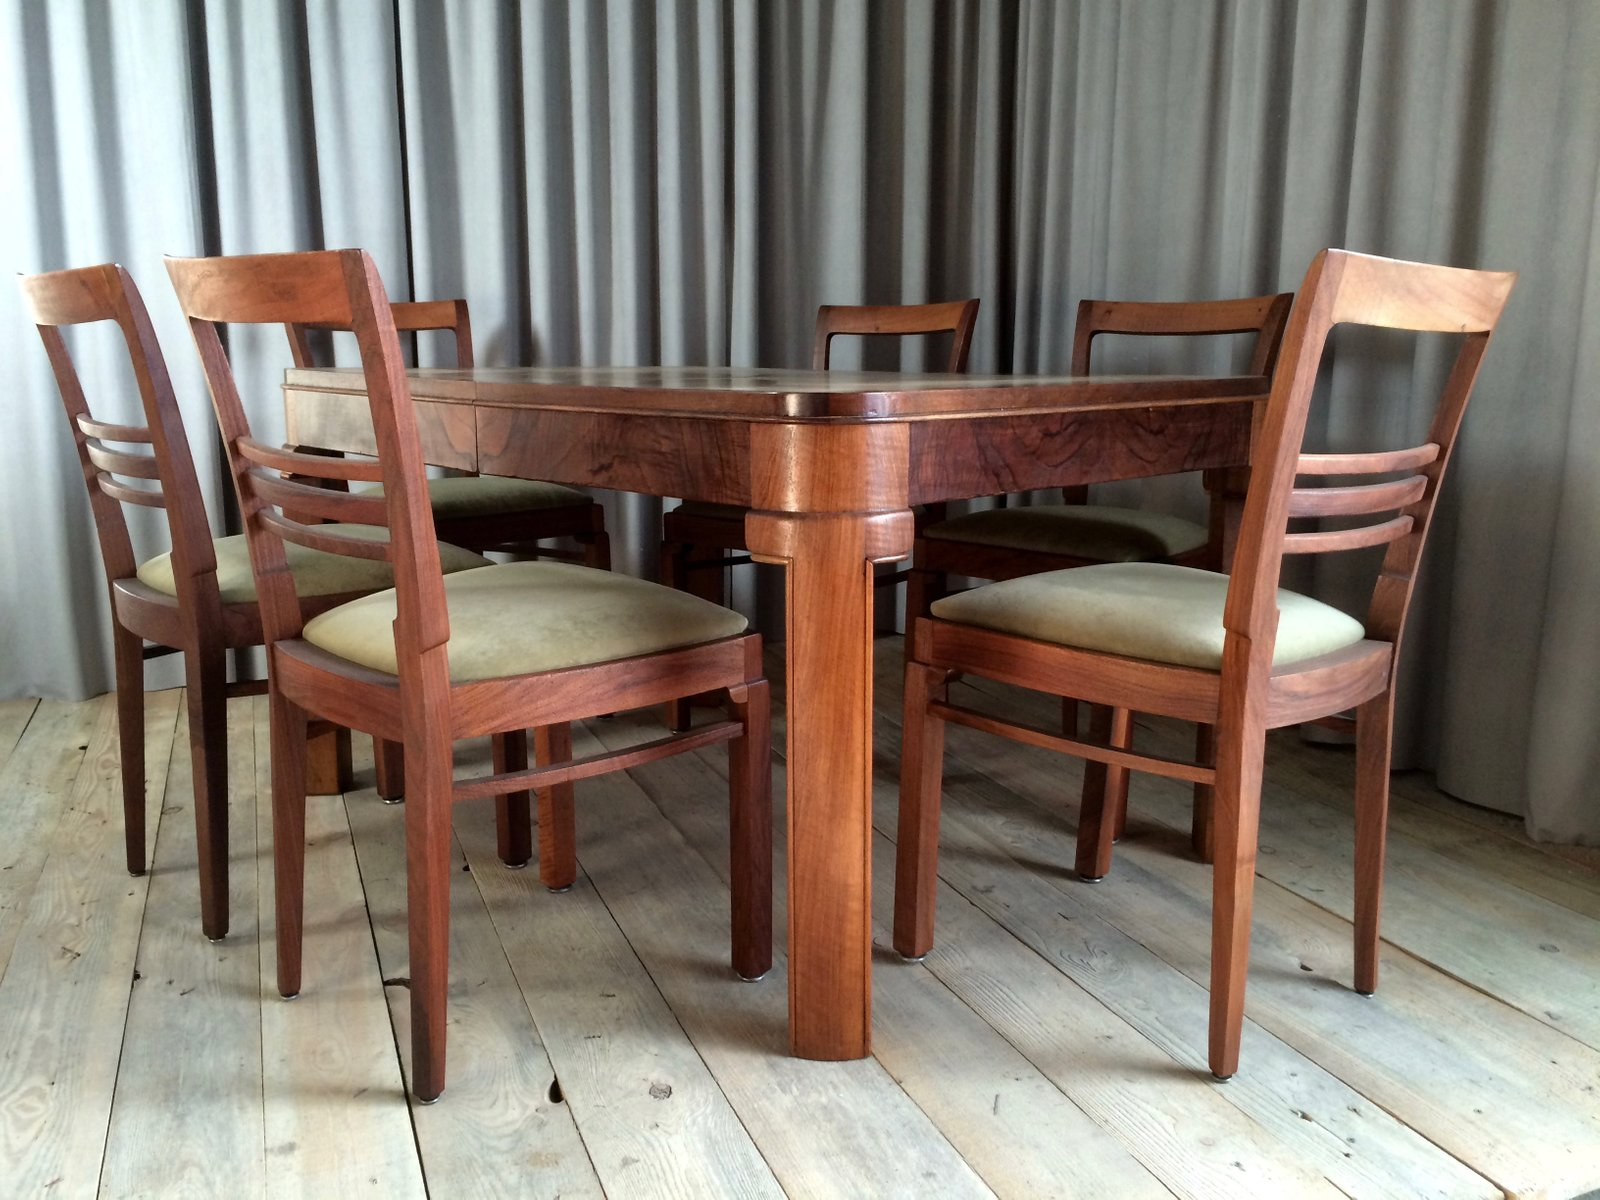 French dining set with 7 chairs 1920s